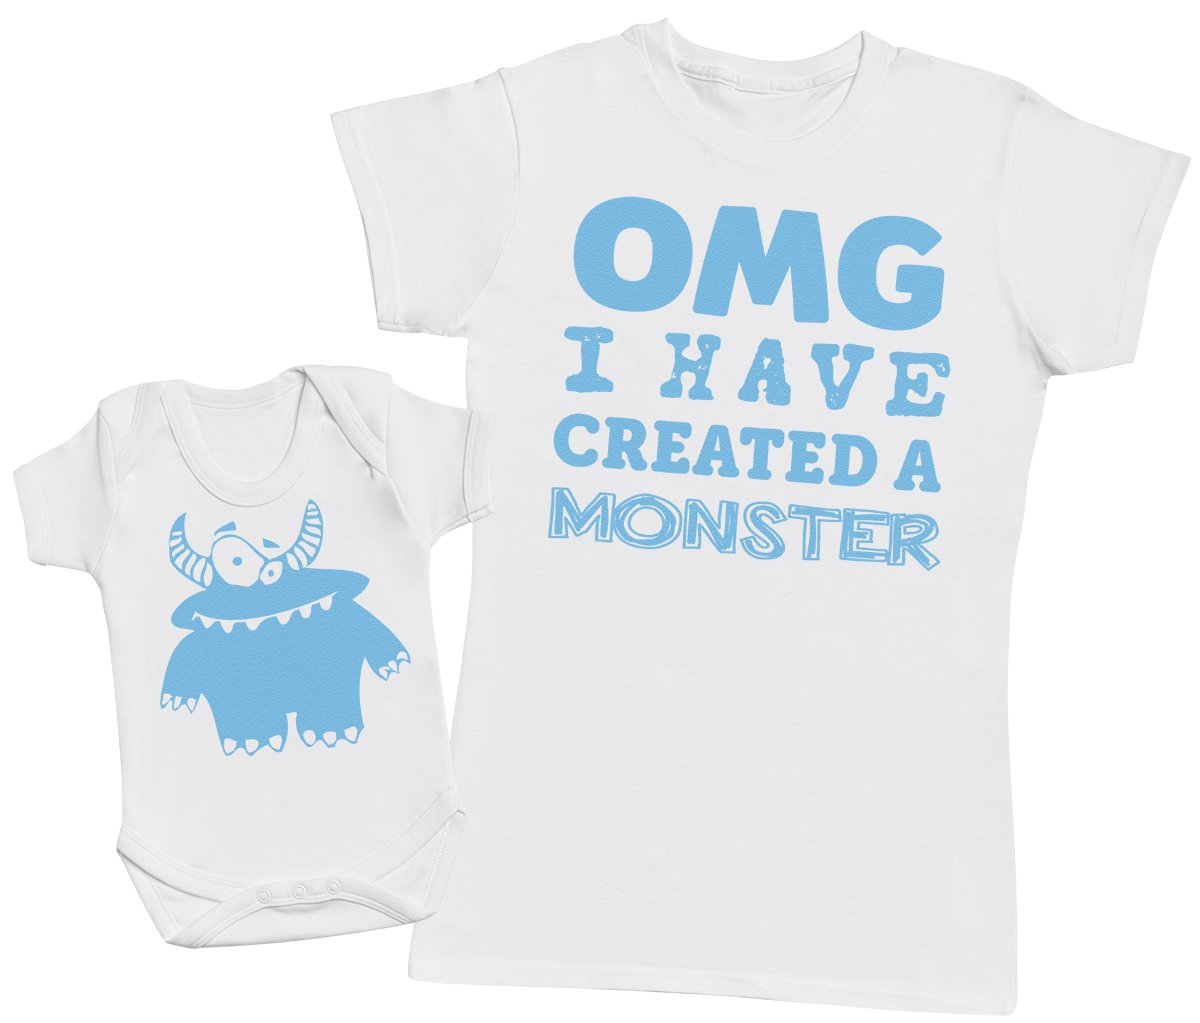 OMG I've Created A Blue Monster! - Matching Mother Baby Gift Set - Womens T Shirt & Baby Bodysuit